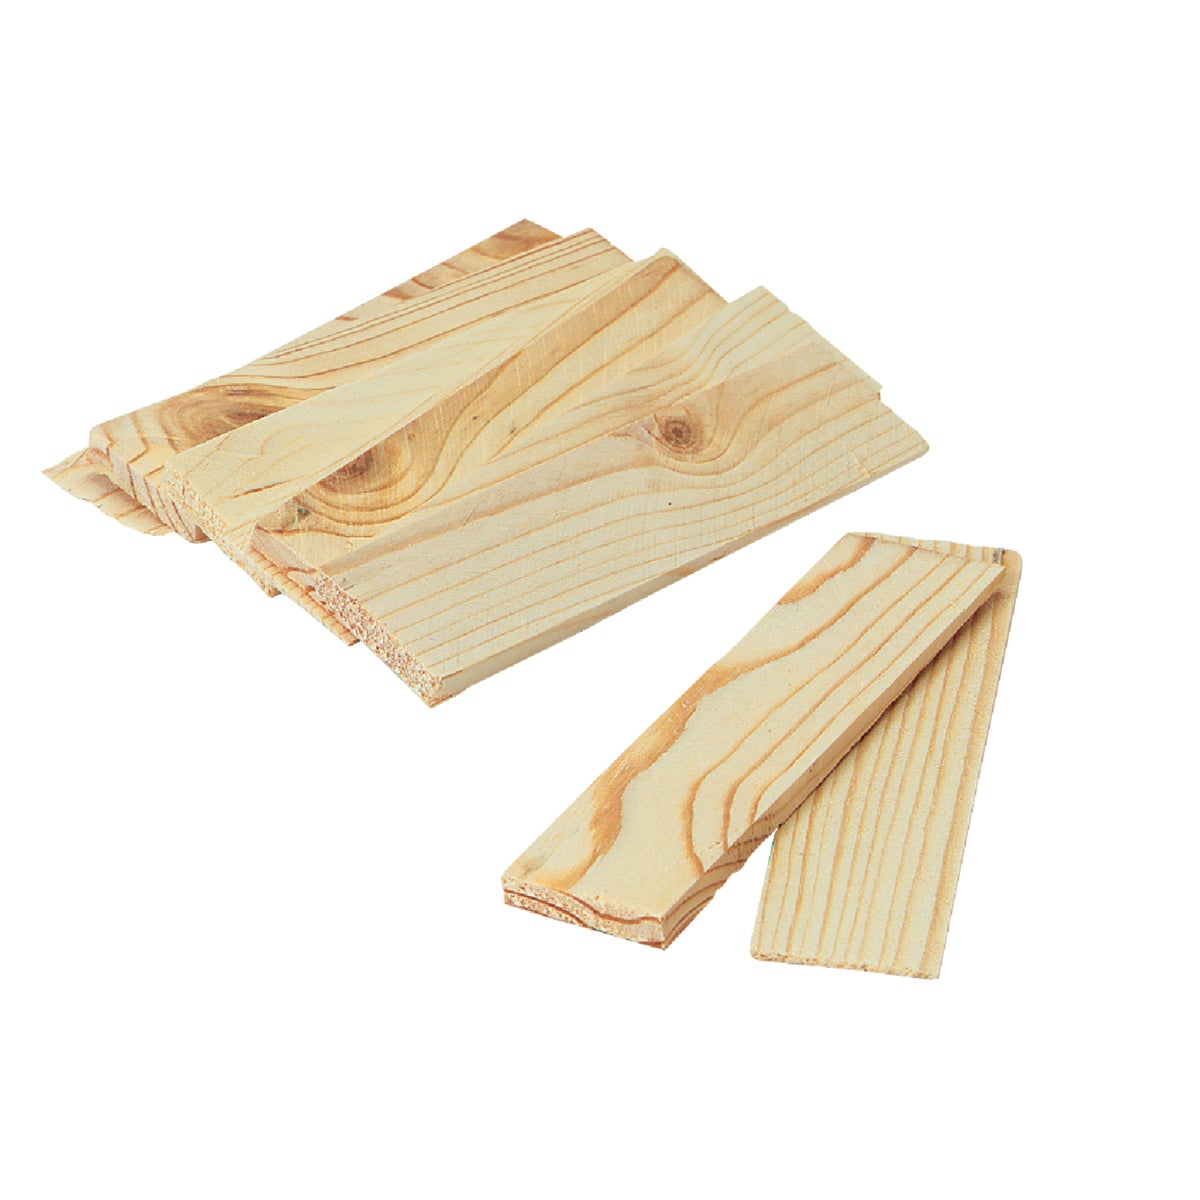 "6"" STRIP WOOD SHIMS - PSH6/9-72/56 by Nelson Wood Shims"